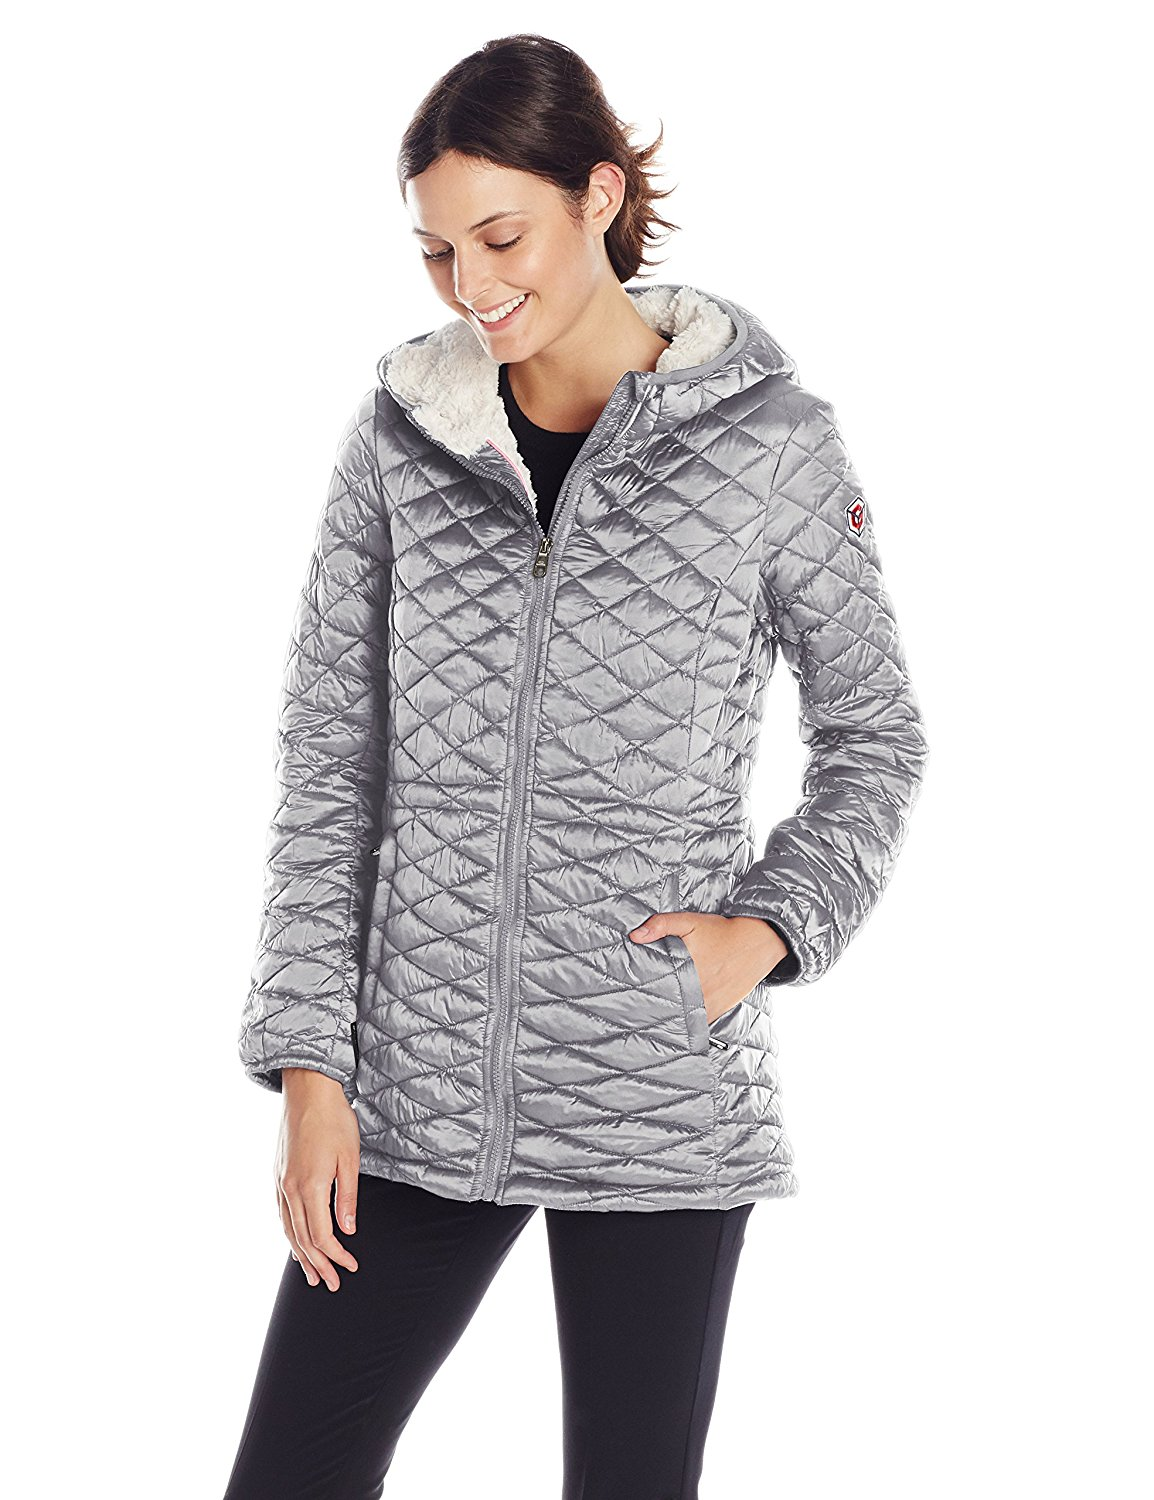 Silver Quilted jacket